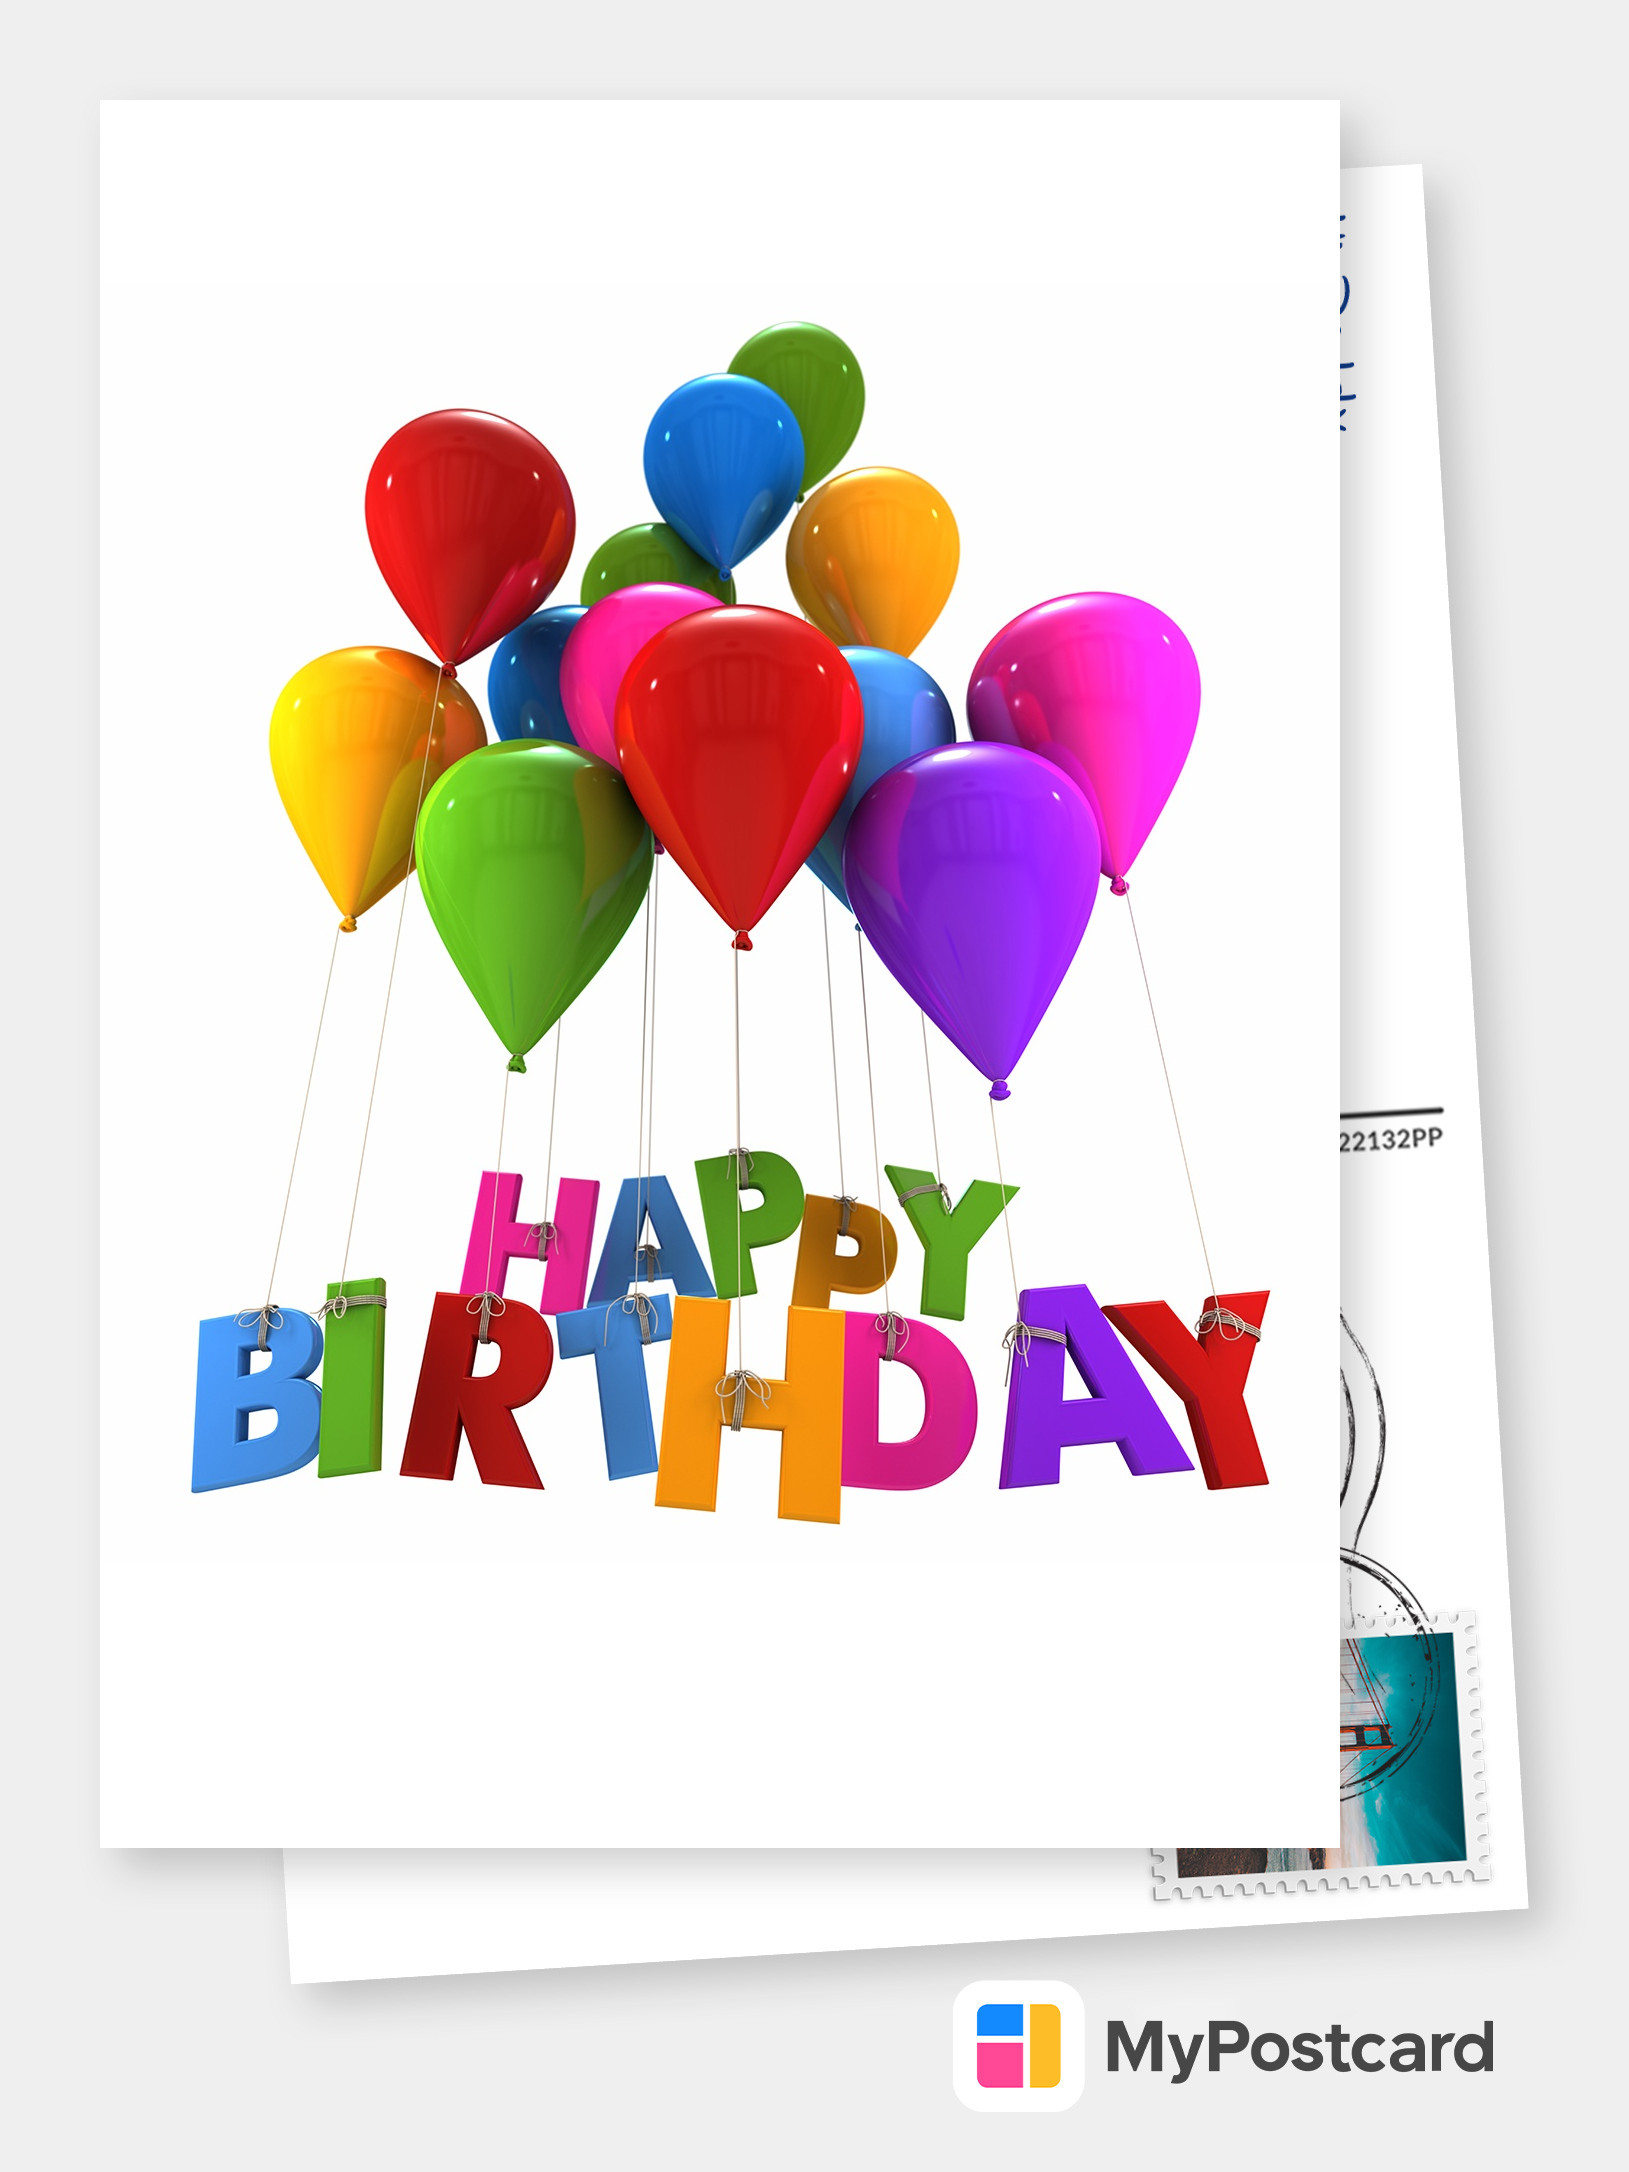 Personalized Happy Birthday Cards Online Printed Mailede For You International Free Shipping Postage Delivery Photo Cards Postcards Greeting Cards